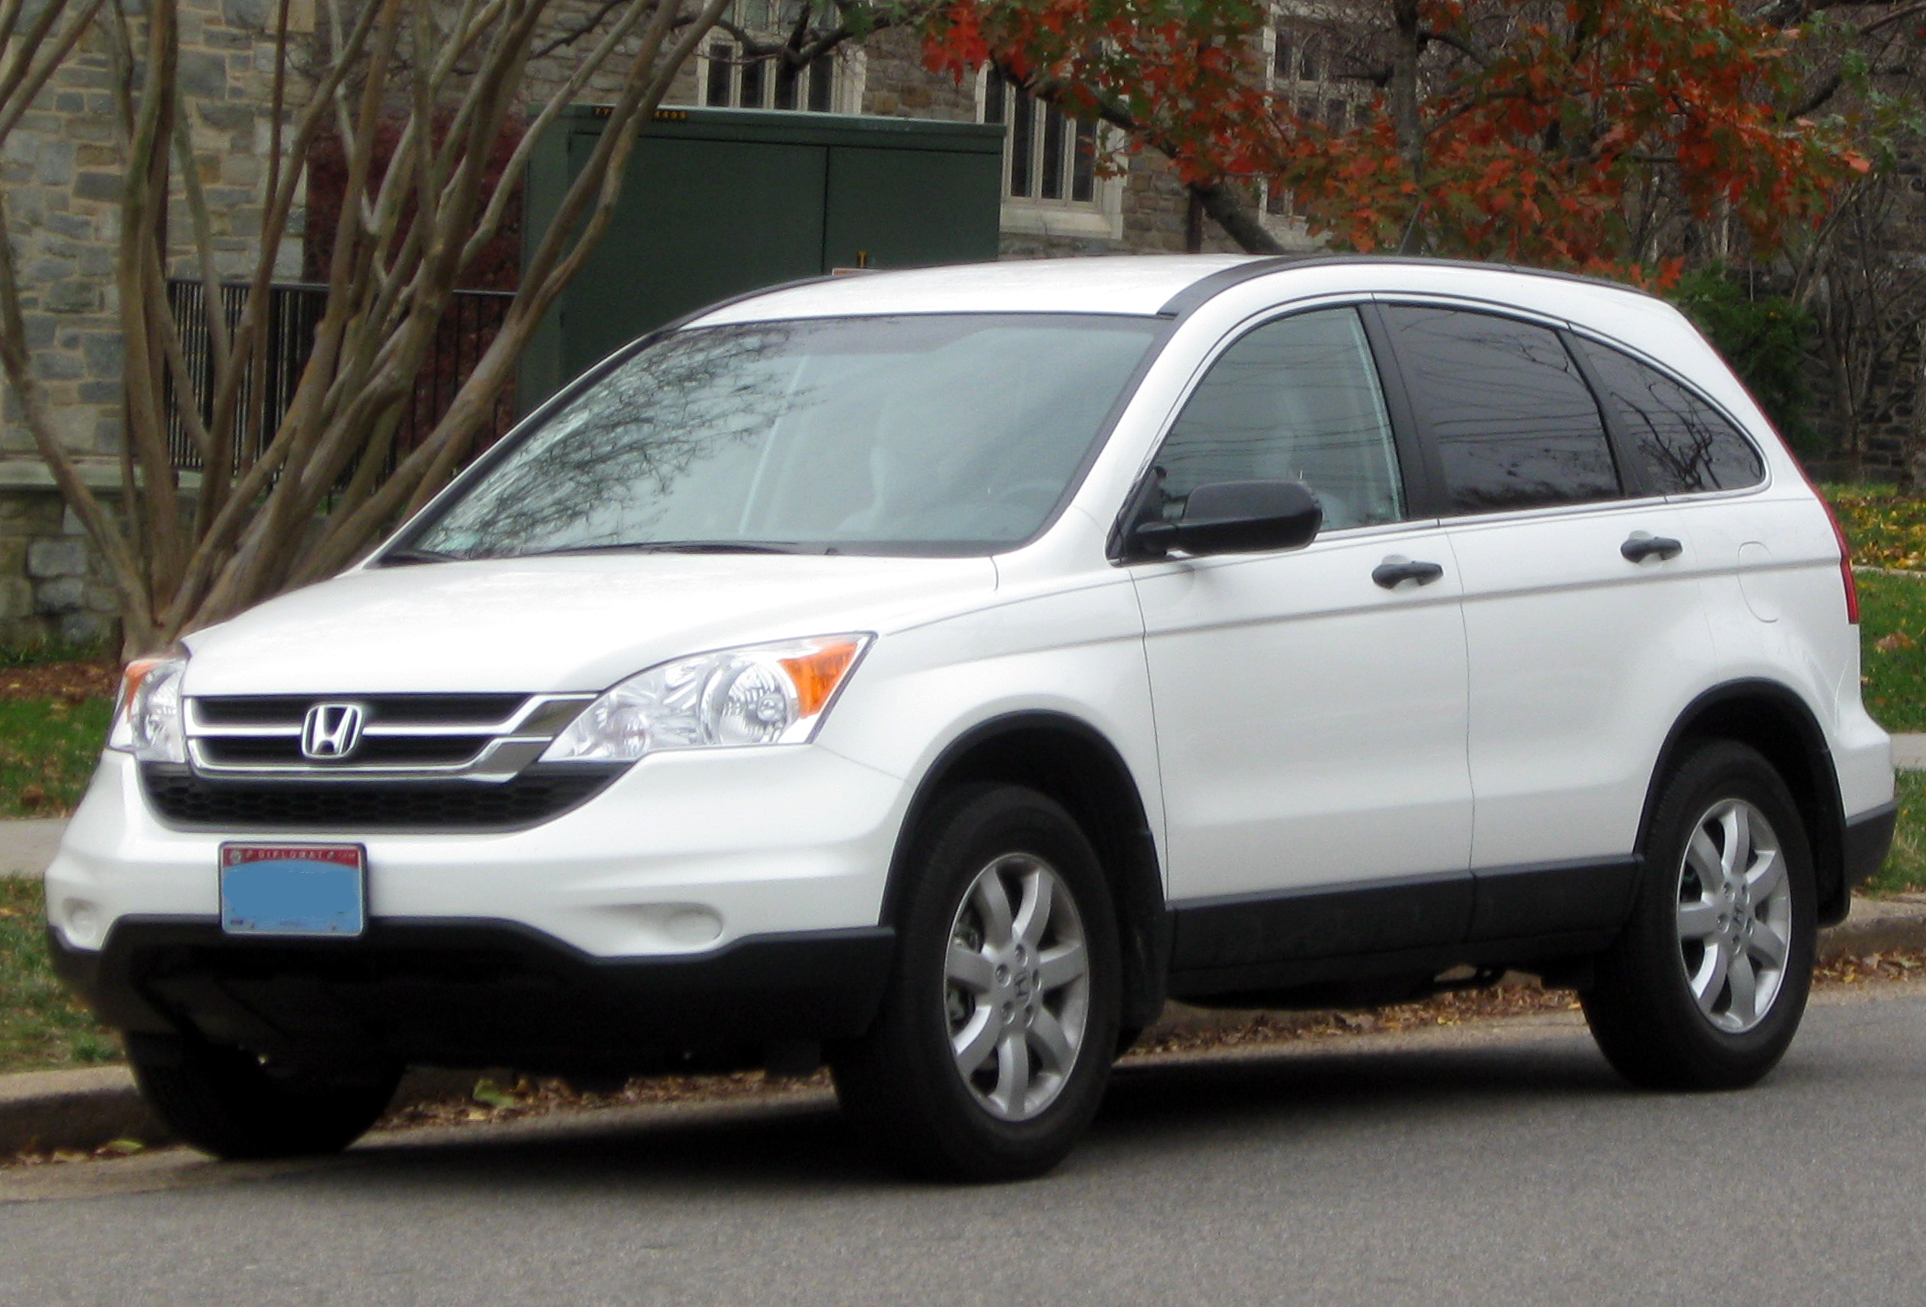 2011 honda cr v reviews honda cr v price photos and. Black Bedroom Furniture Sets. Home Design Ideas